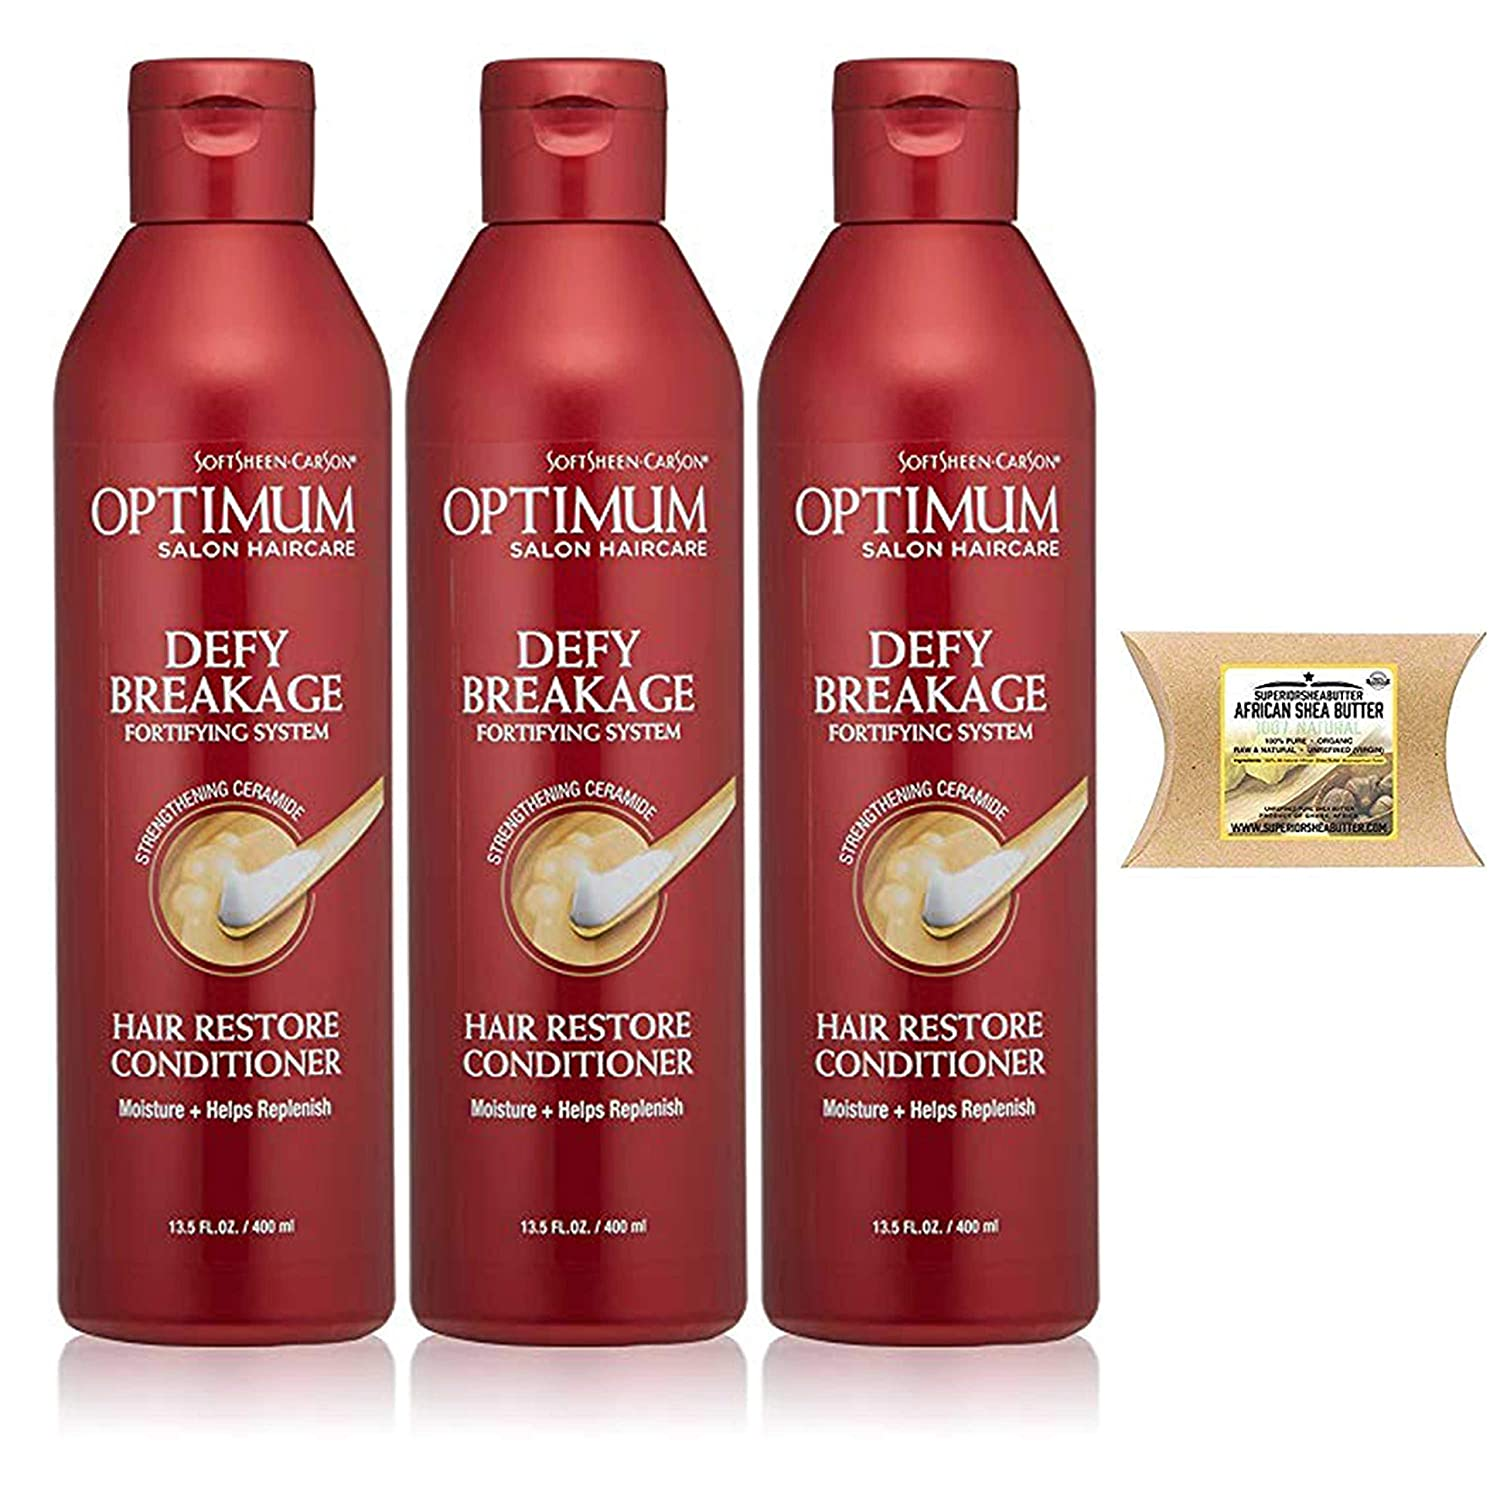 SoftSheen-Carson Optimum Salon Haircare Defy Breakage Fortifying Sys Hair Restore Conditioner, 13.5 floz (3PC-SheaButter)